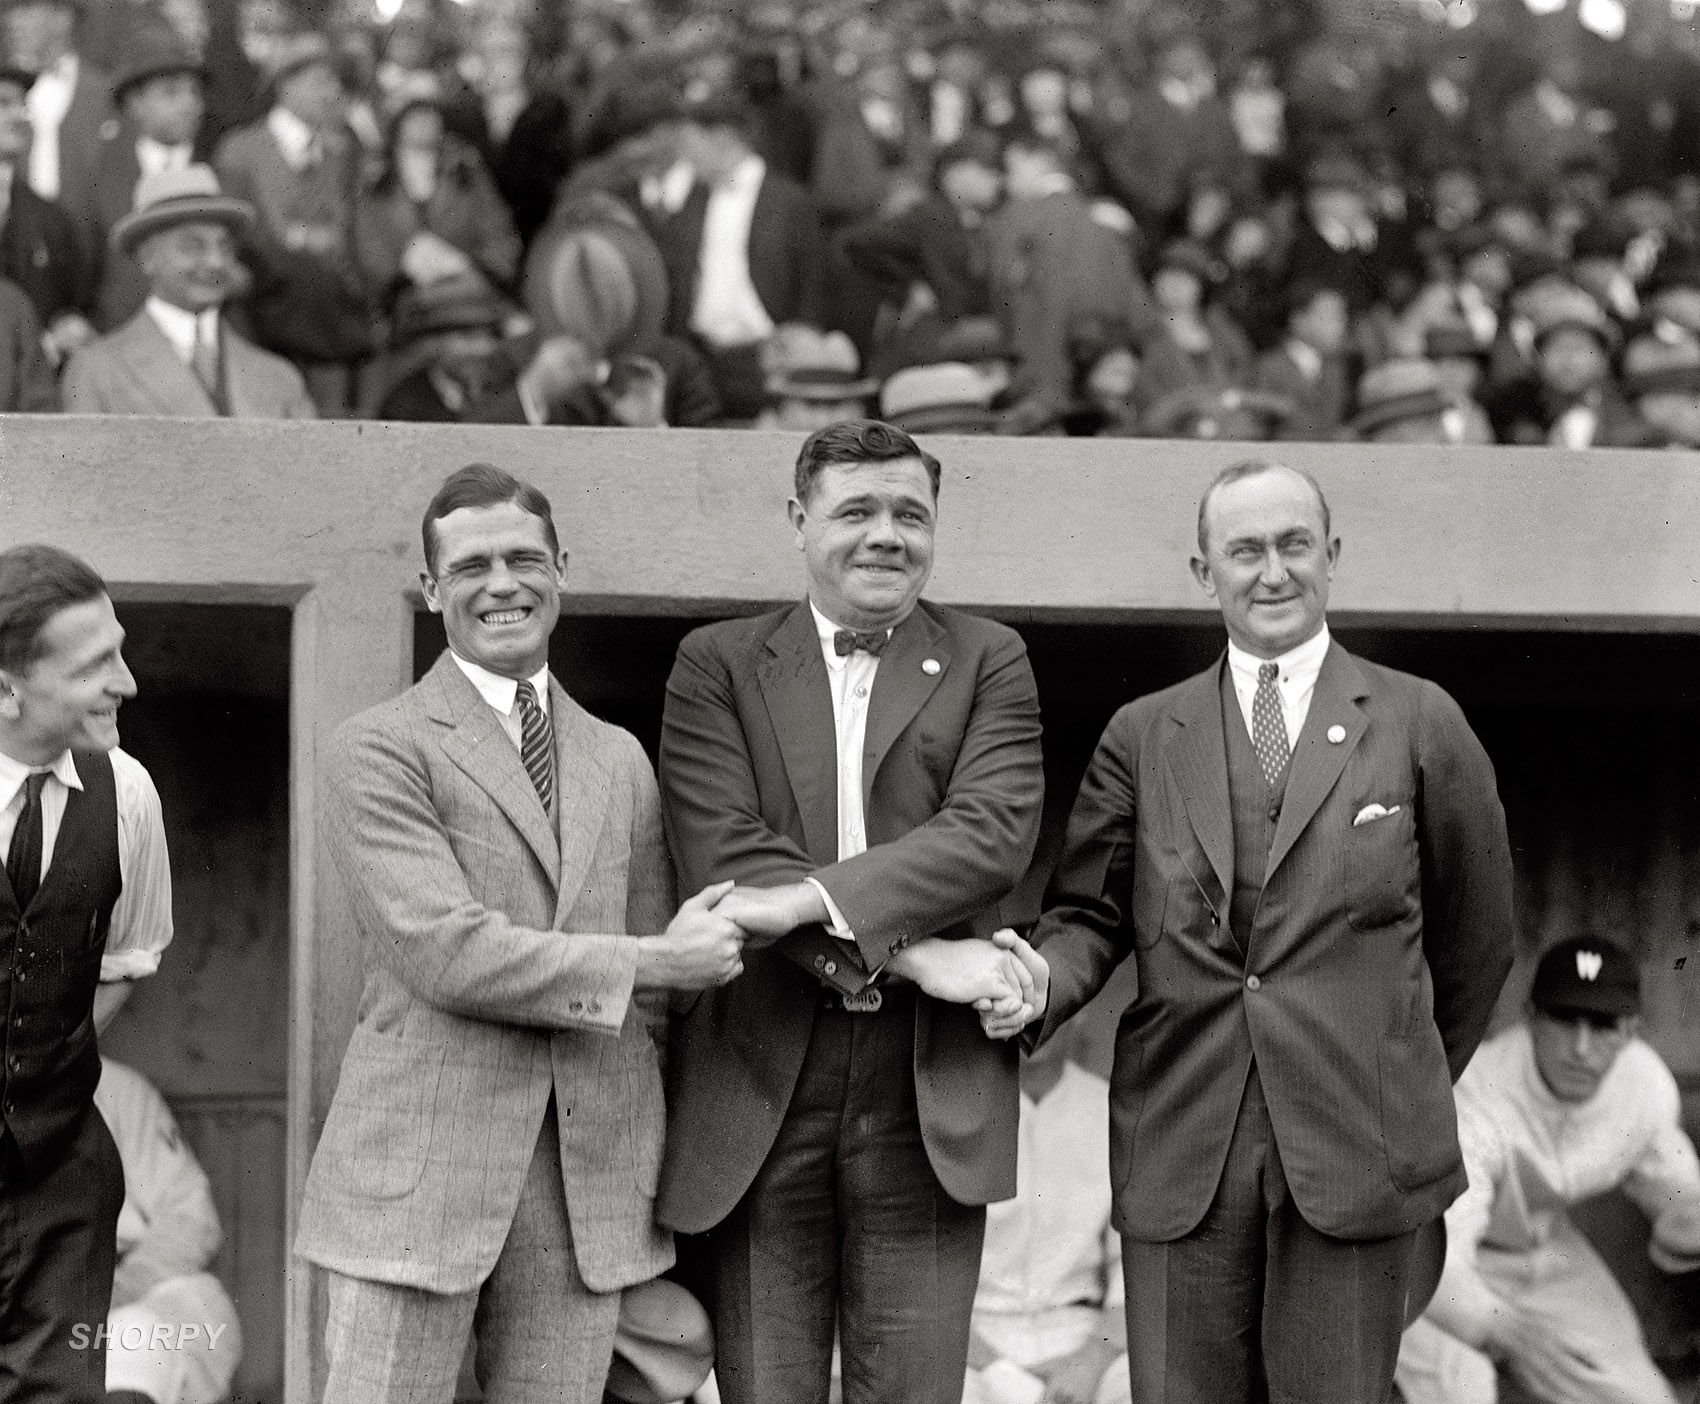 """October 4, 1924. """"Sisler, Ruth, Cobb."""" George Sisler, Babe Ruth and Ty Cobb at the first game of the 1924 World Series at Griffith Stadium in Washington, D.C. National Photo Company Collection glass negative."""